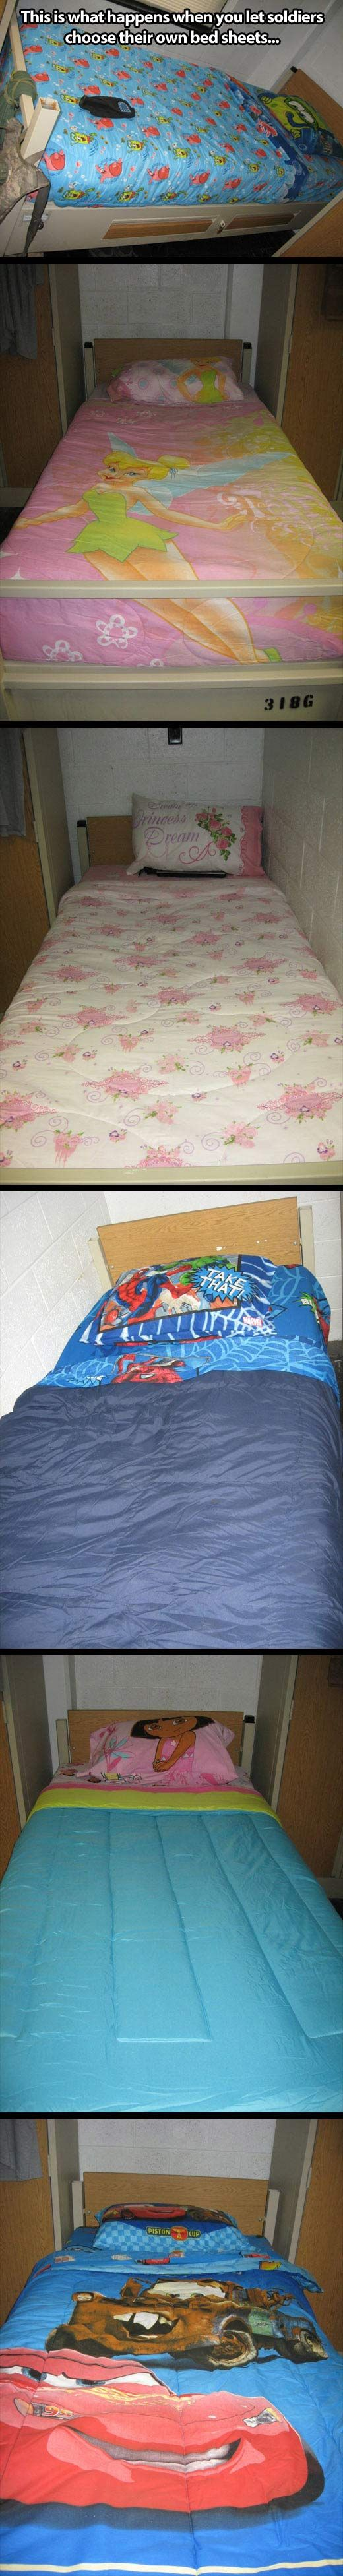 "When soldiers choose their own bed sheets…""People keep pinning this onto their funny board but what if this is because it reminds them of their kids back at home that they can't tuck into bed at night? Great I just made myself sad"" -Molly White (pinner)"